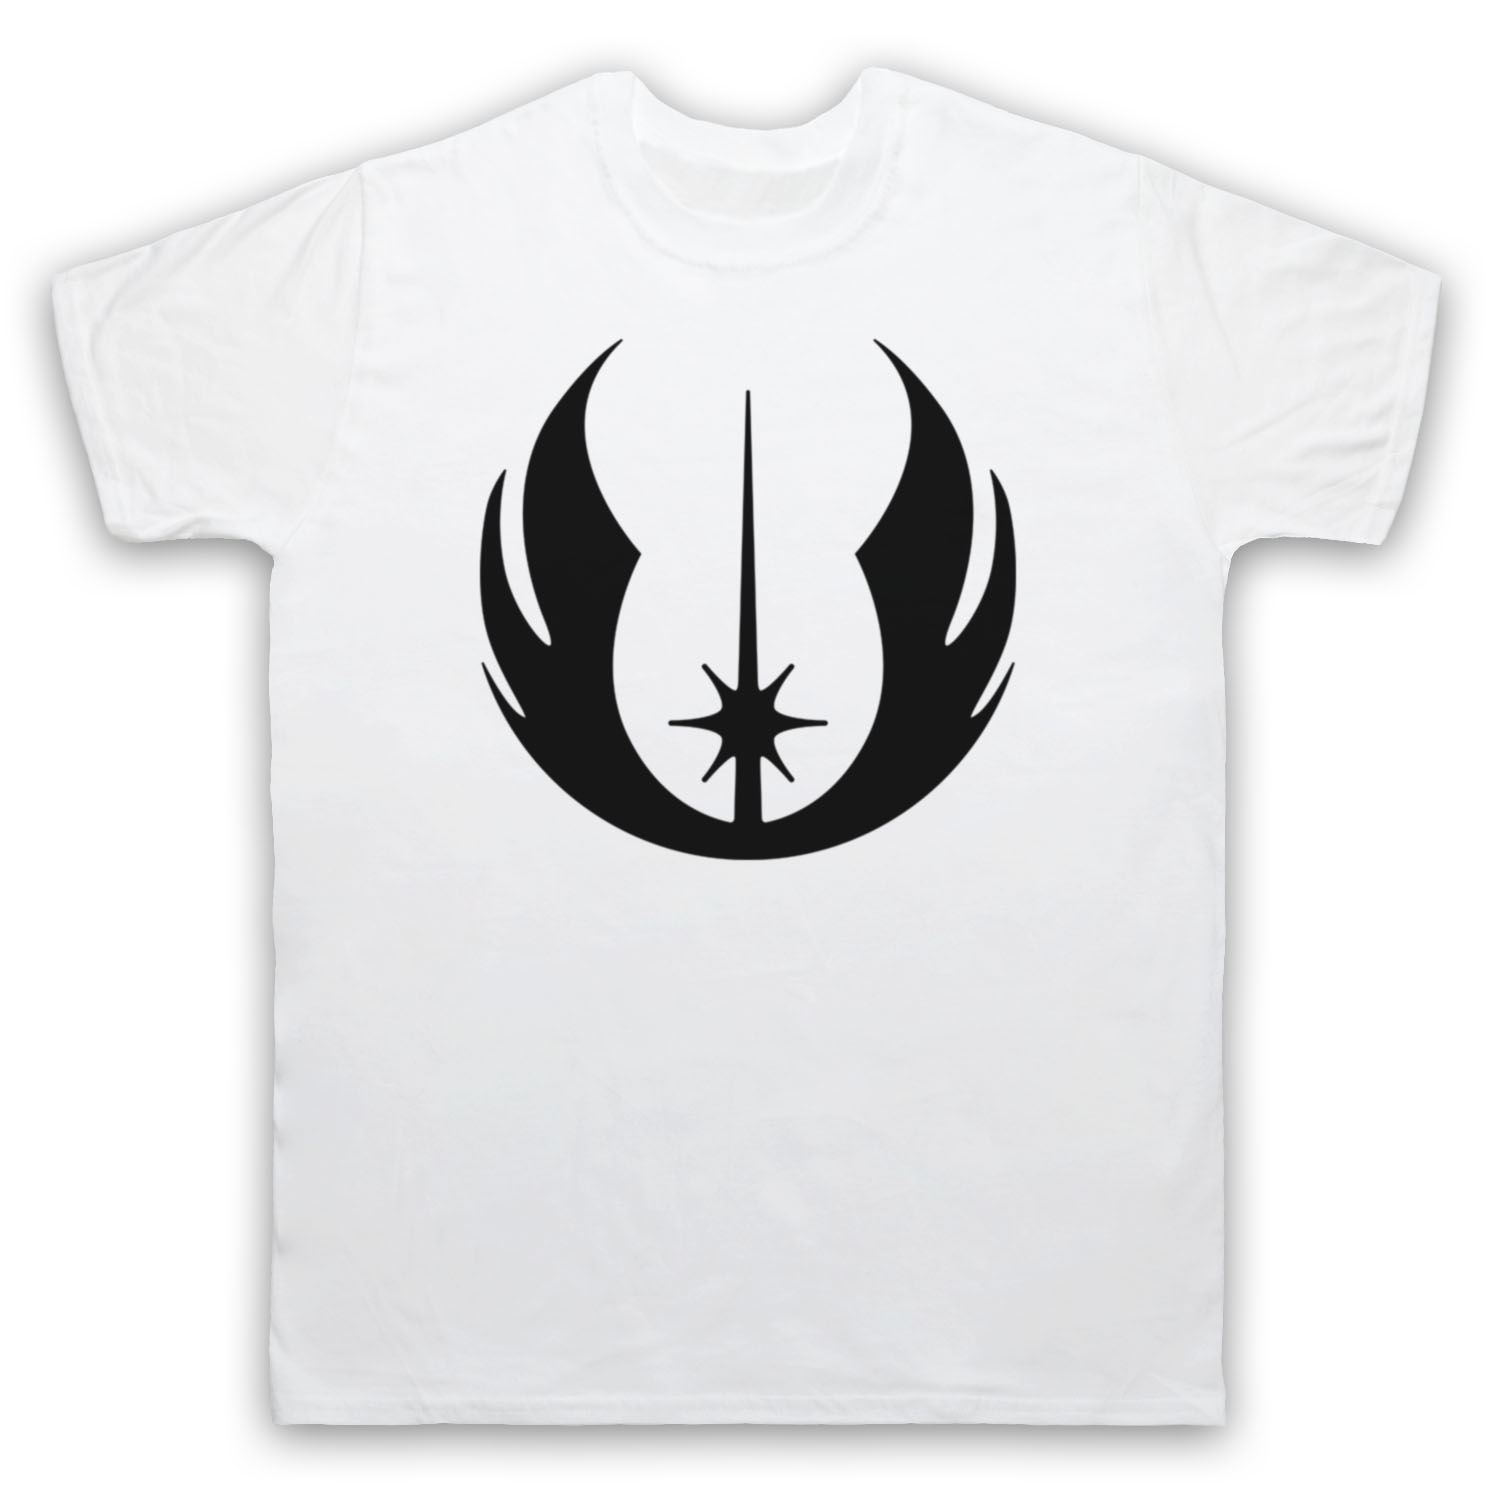 Star wars jedi order logo sci fi film symbol icon adults kids t star wars jedi order logo sci fi film biocorpaavc